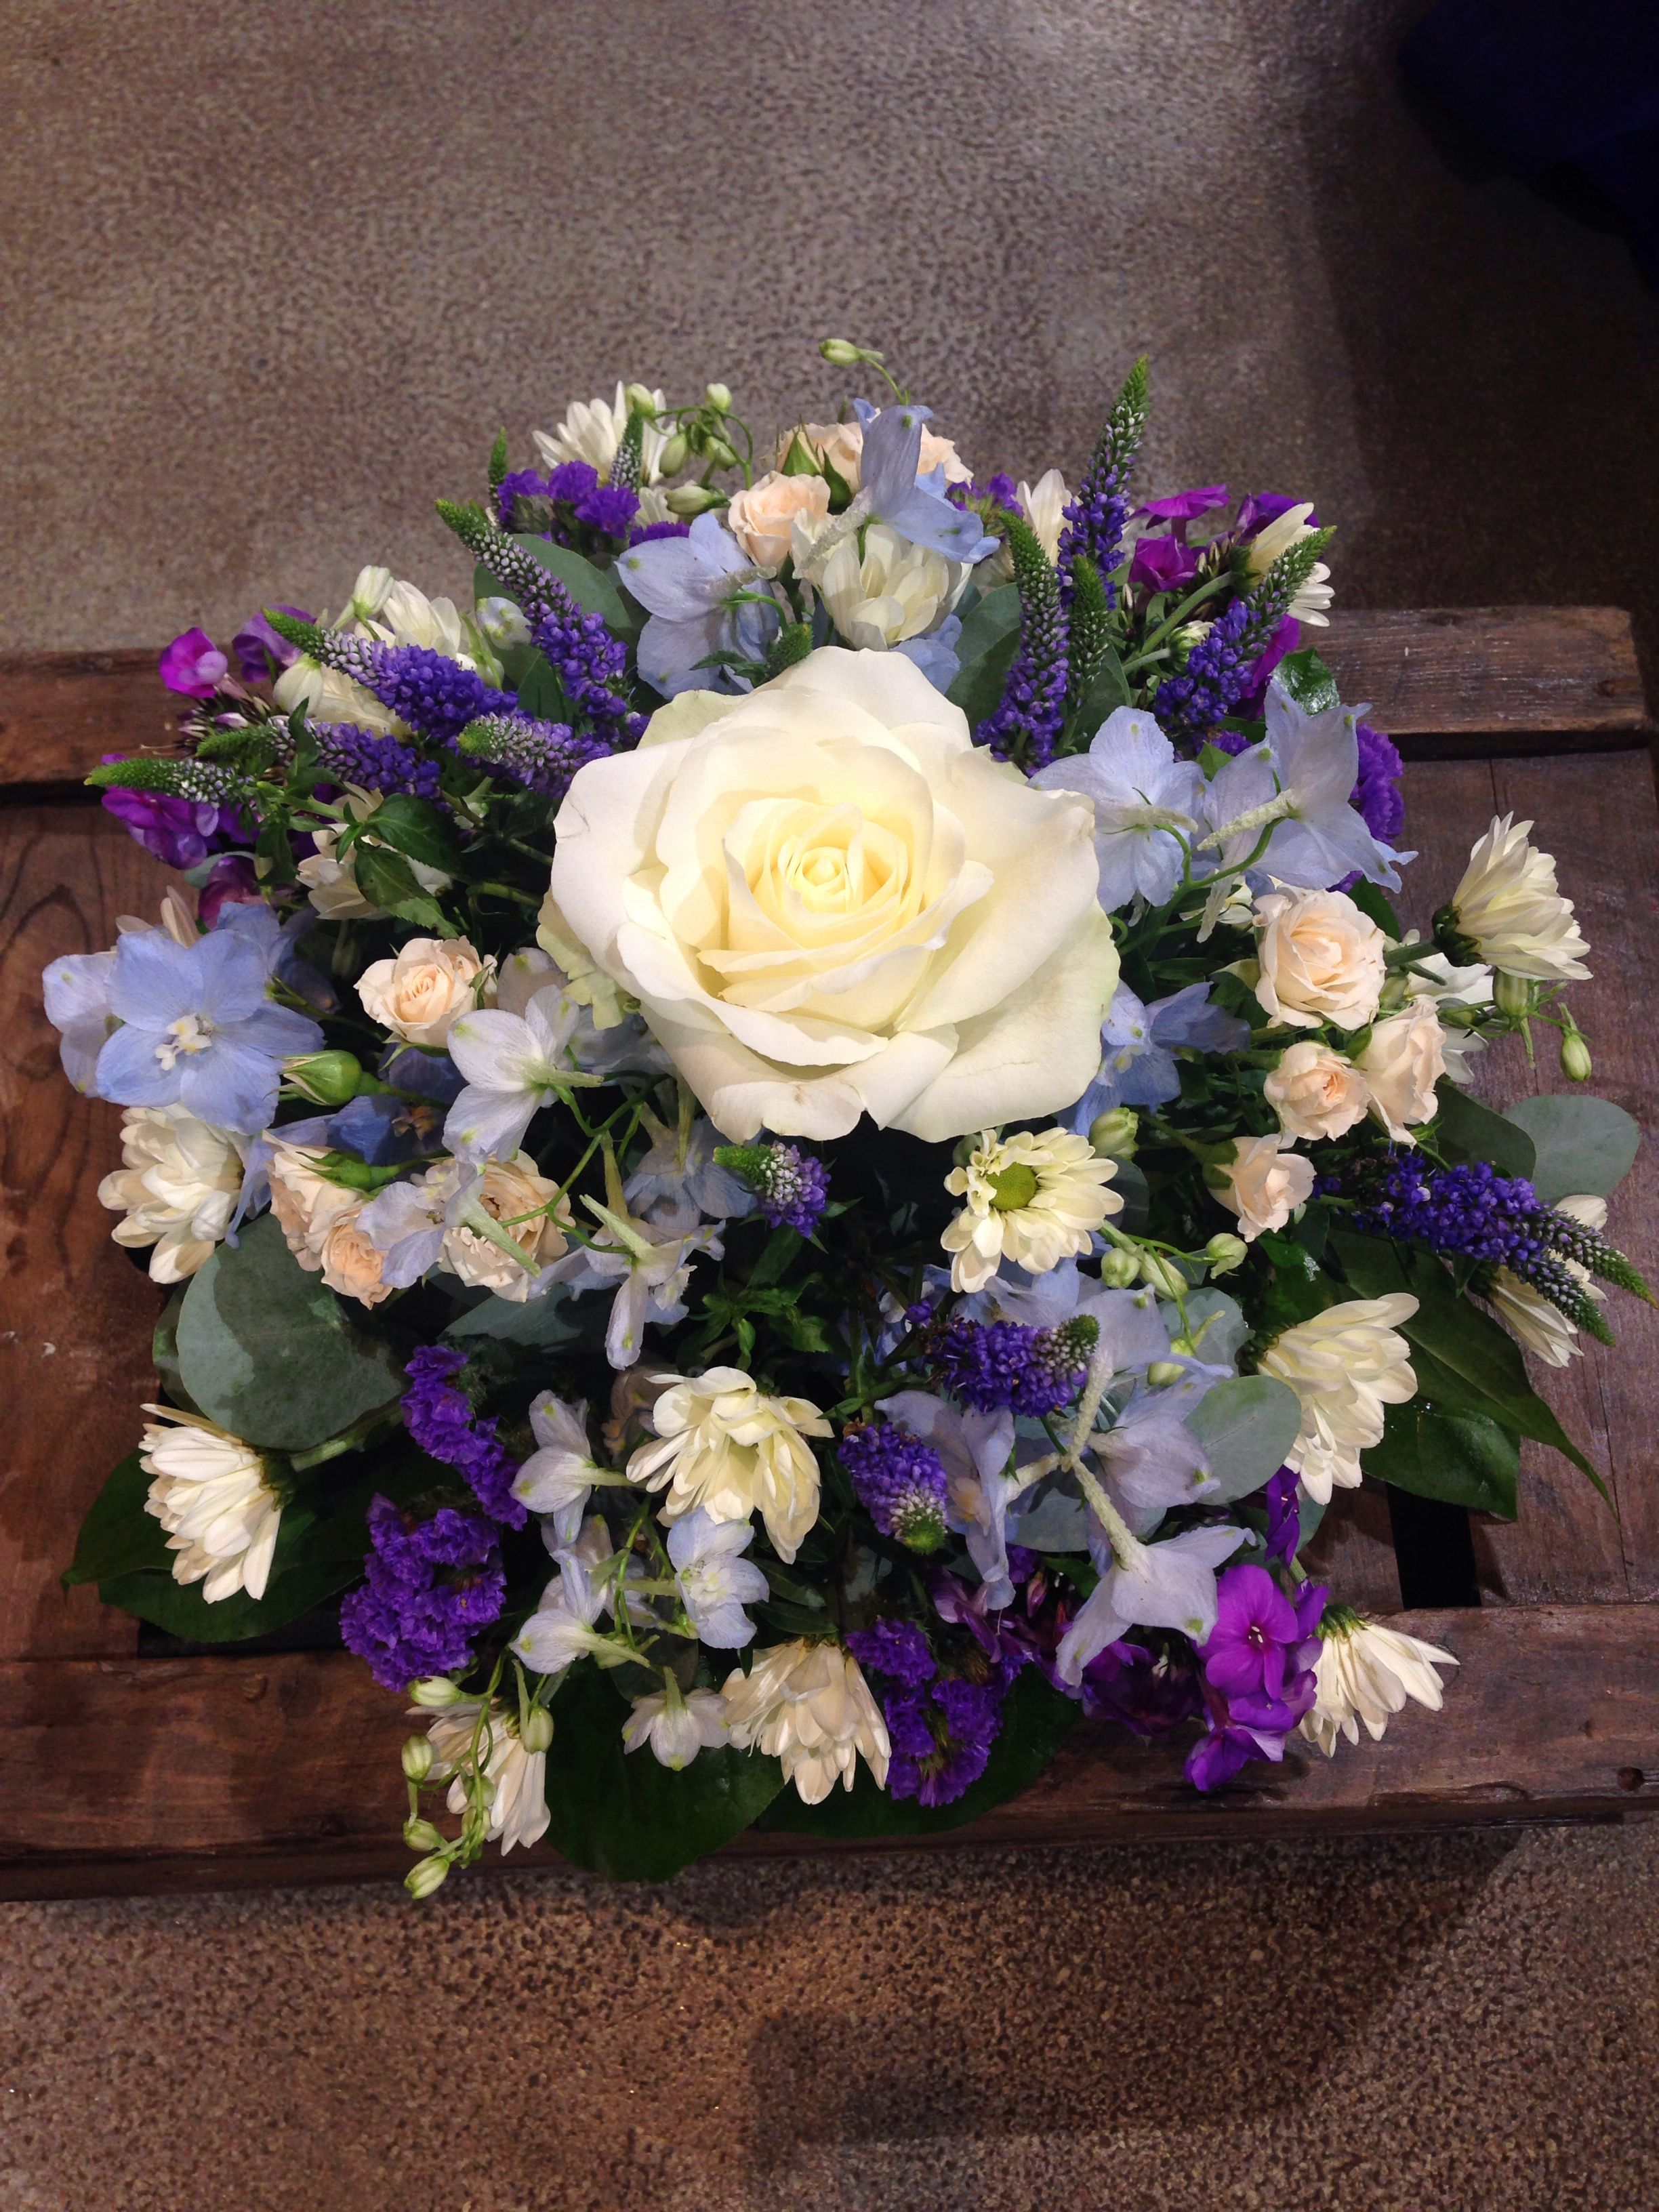 Funeral Posy In Pretty Blues And Creams Including Roses And